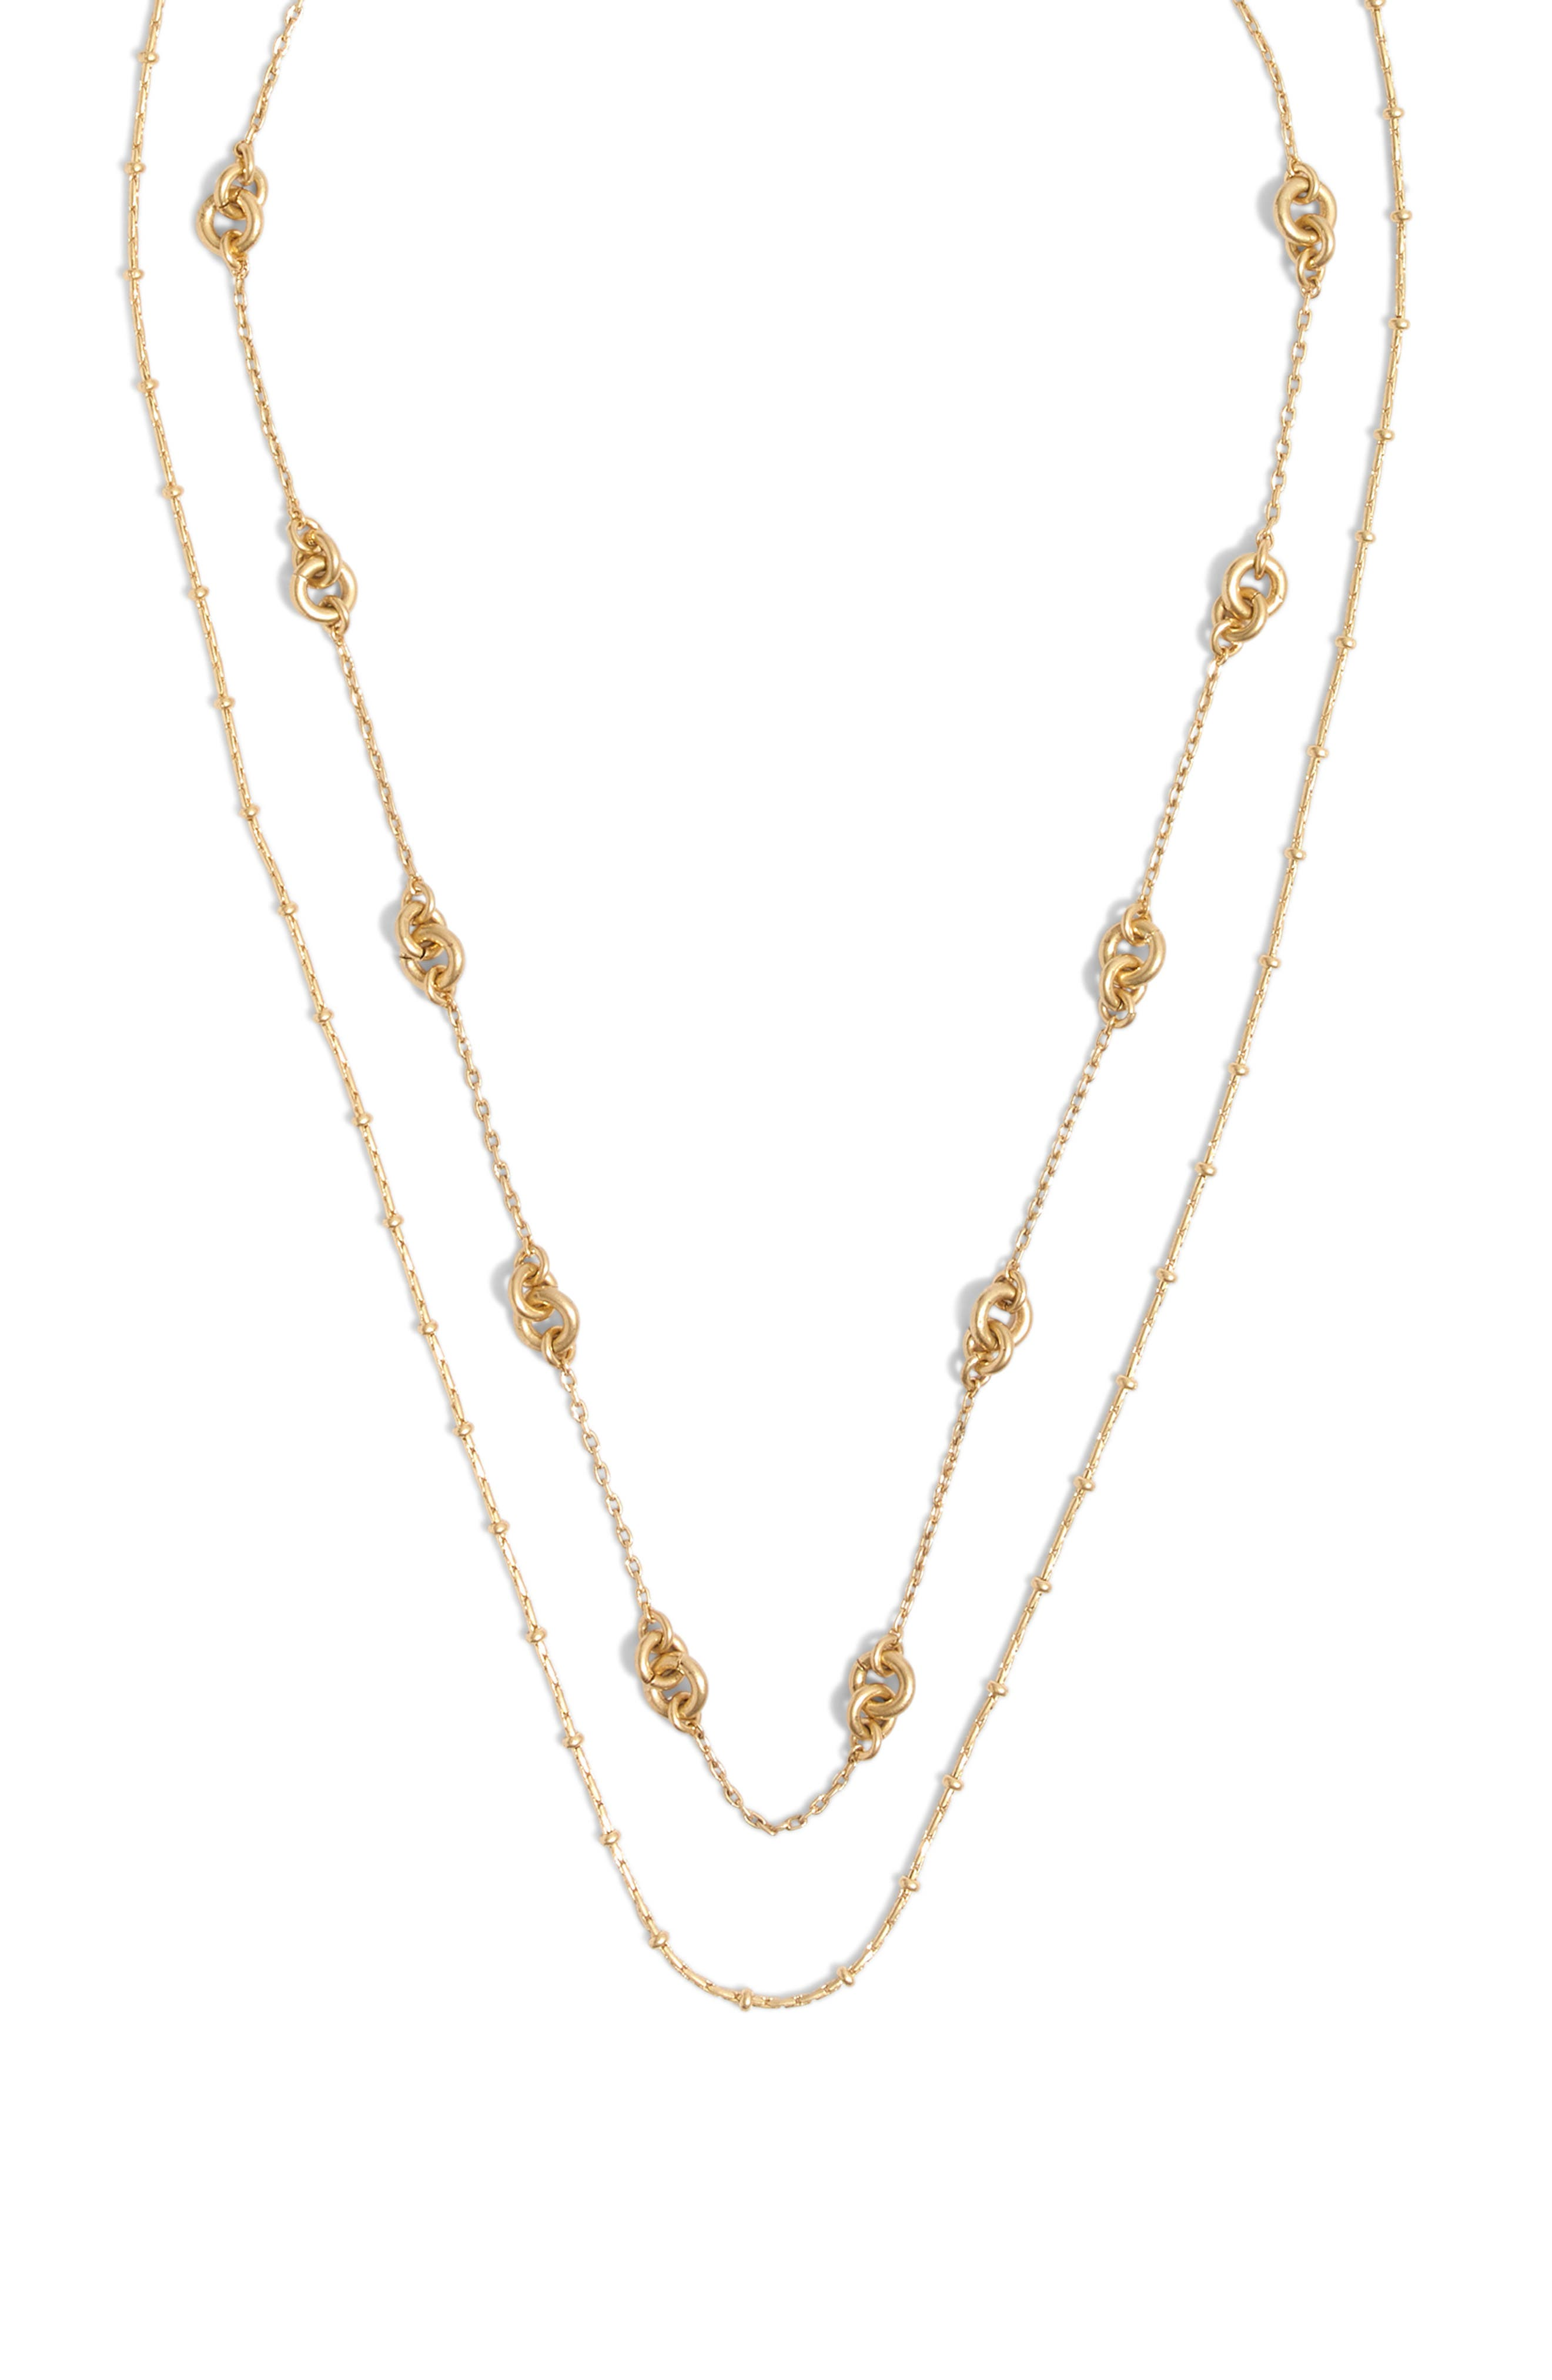 MADEWELL Layered Chain Necklace, Main, color, VINTAGE GOLD